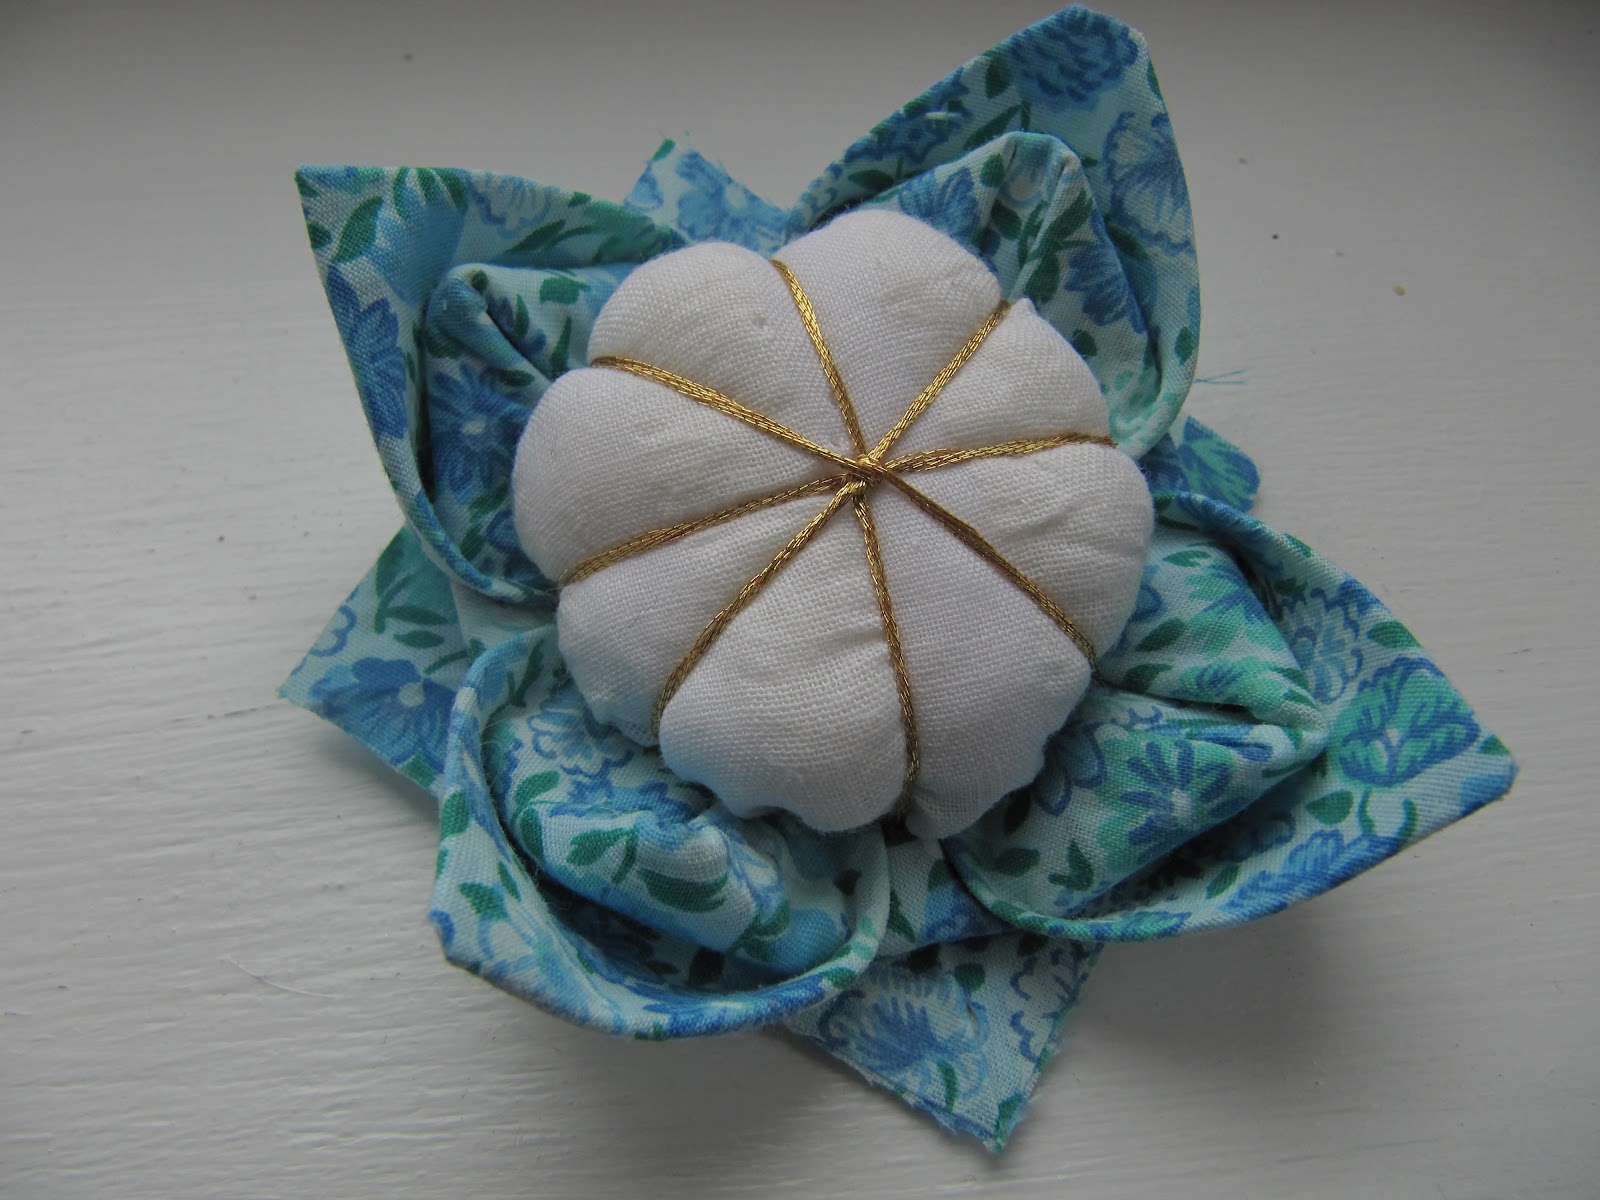 Knotted cotton how to make a fabric origami lotus flower pincushion how to make a fabric origami lotus flower pincushion dhlflorist Image collections